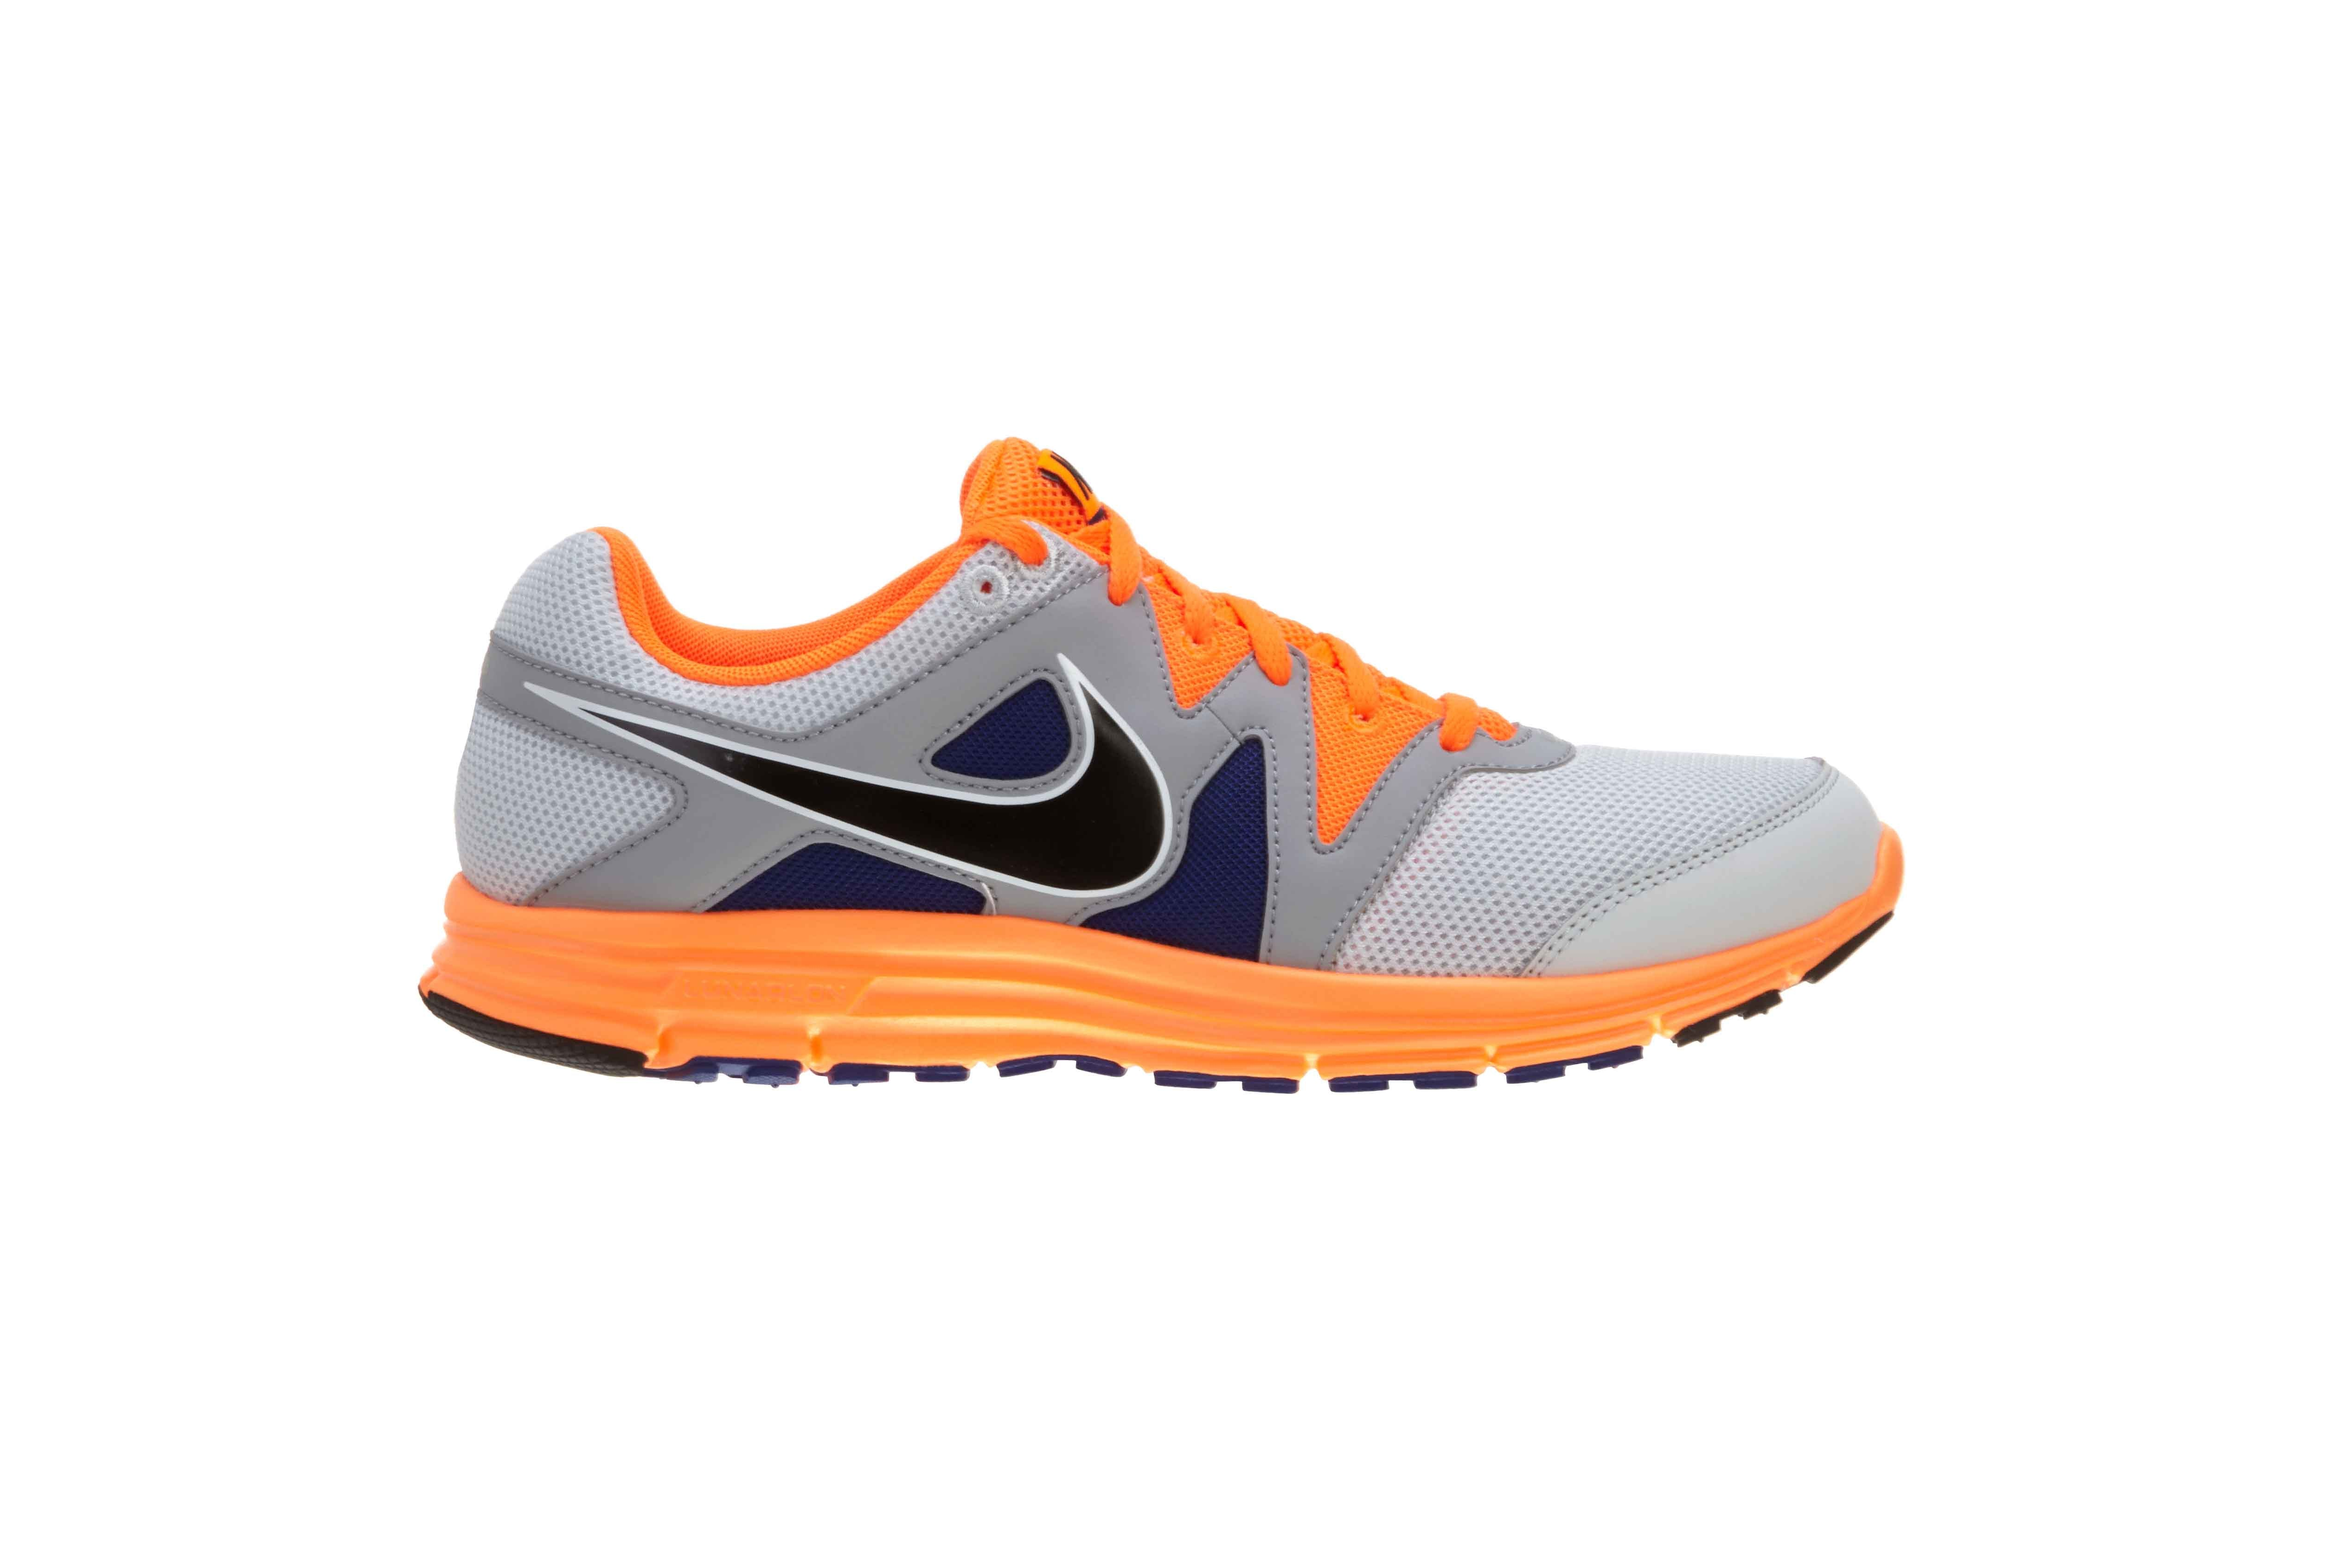 sports shoes d6a88 e3f3c Nike Free Xt Motion Fit+ Mens Style 454116